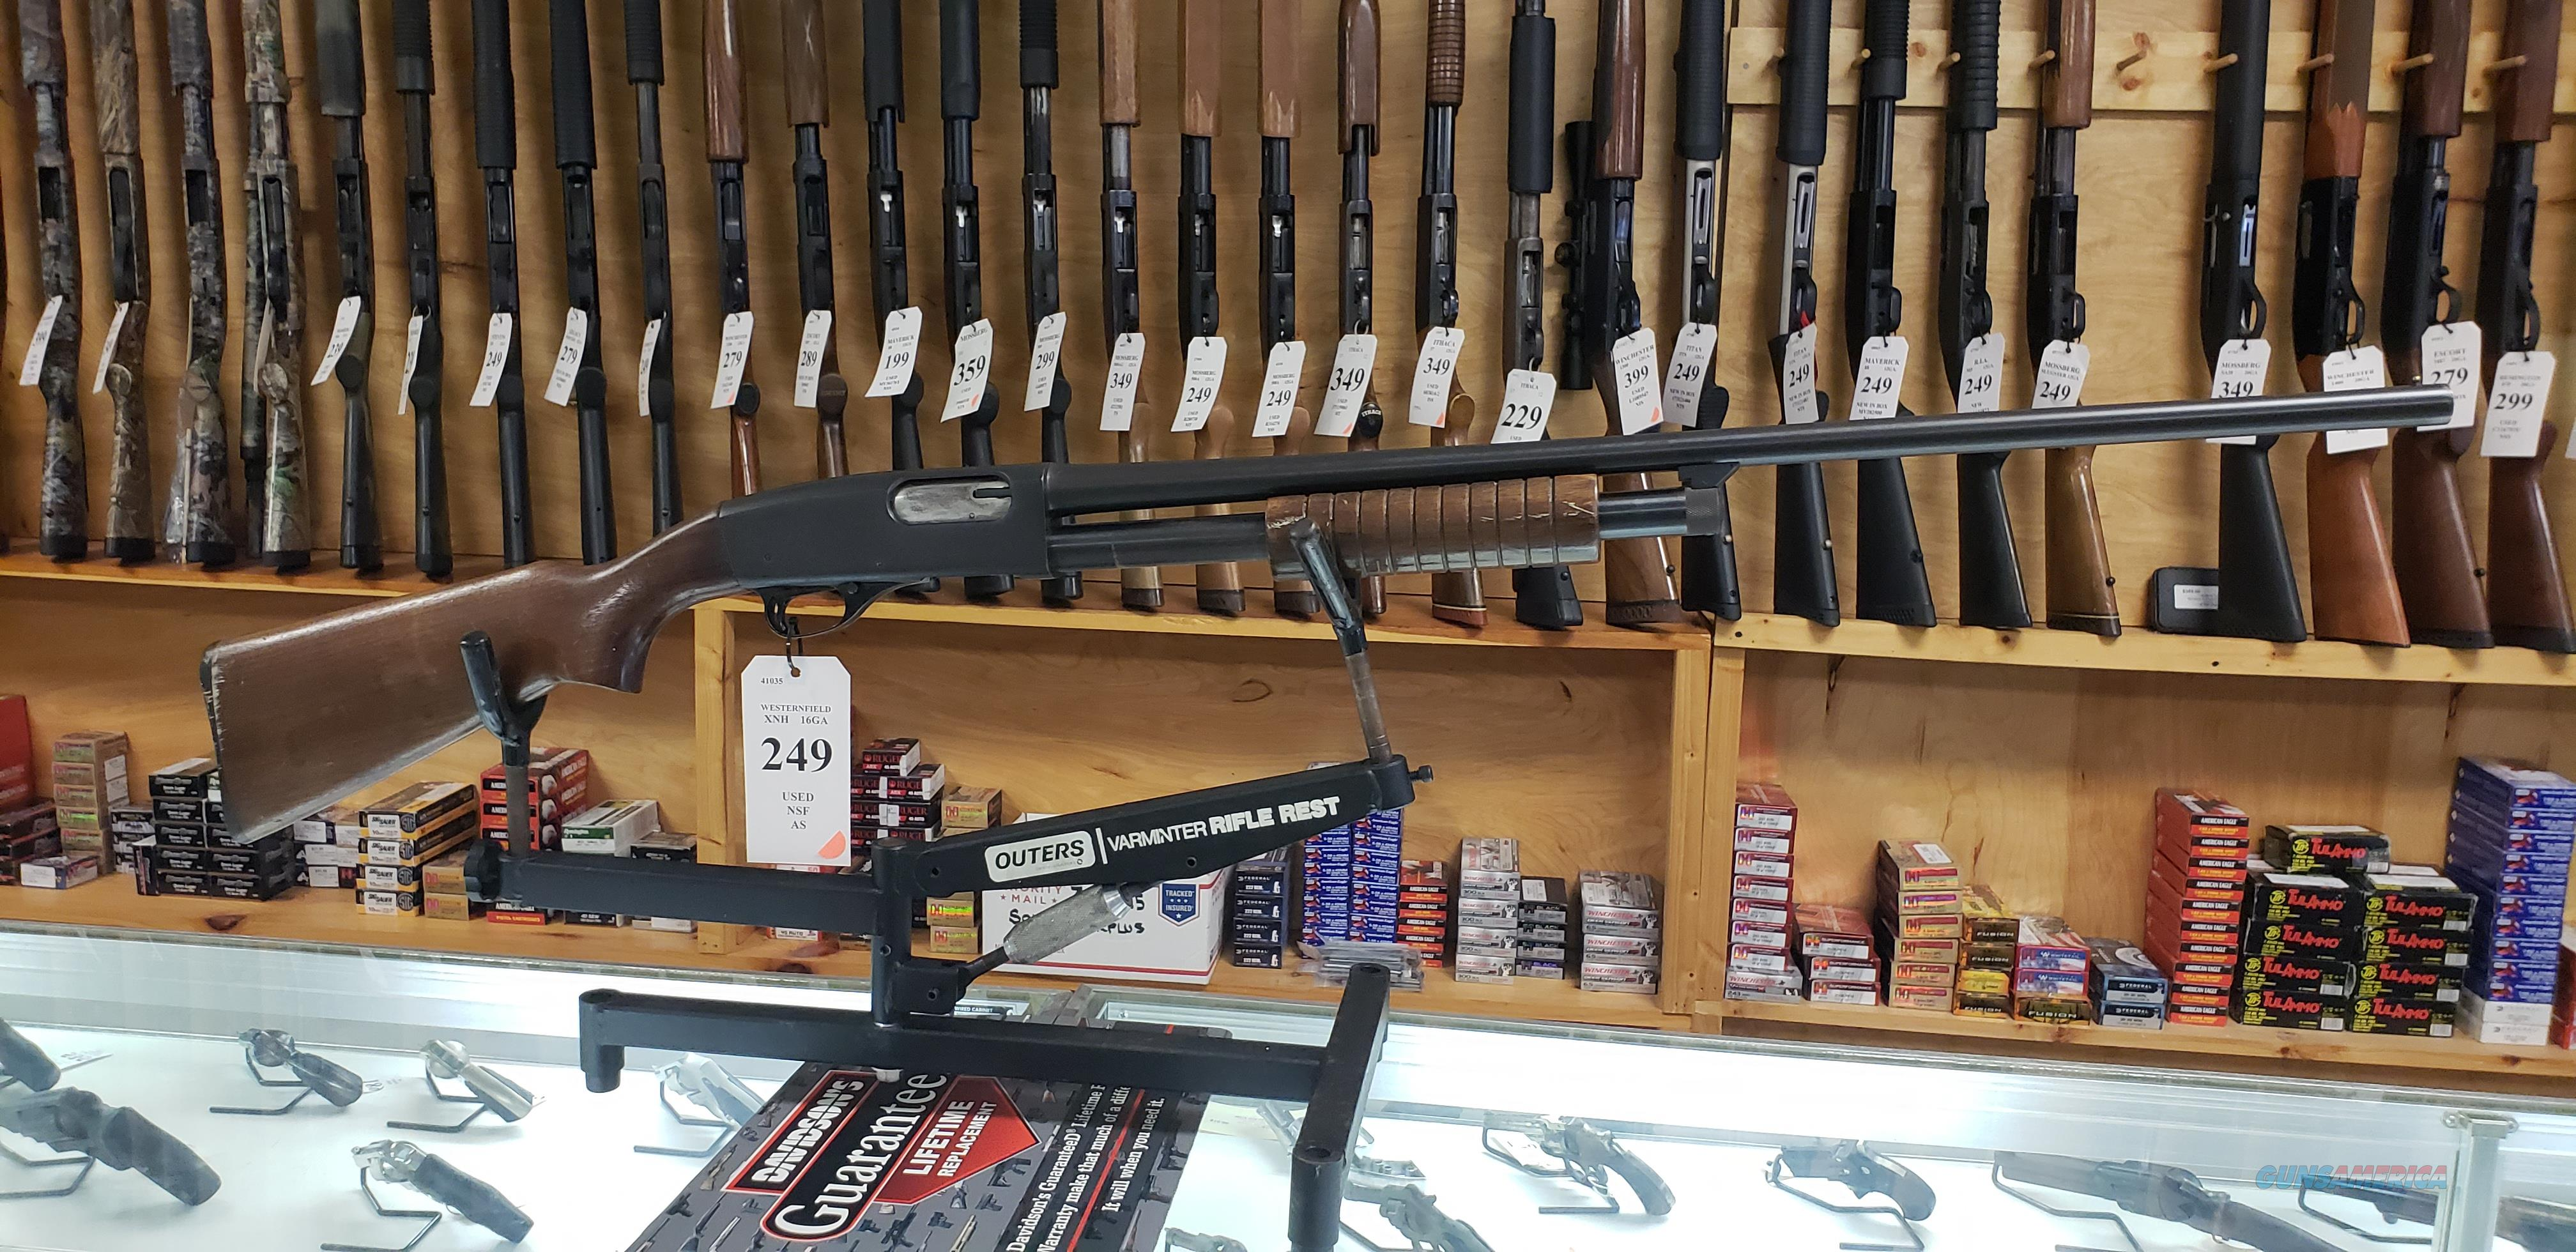 Montgomery Ward Westernfield XNH (NOBEL 602) 16GA Pump Shotgun *LAYAWAY AVAILABLE*  Guns > Shotguns > Nobel Shotguns